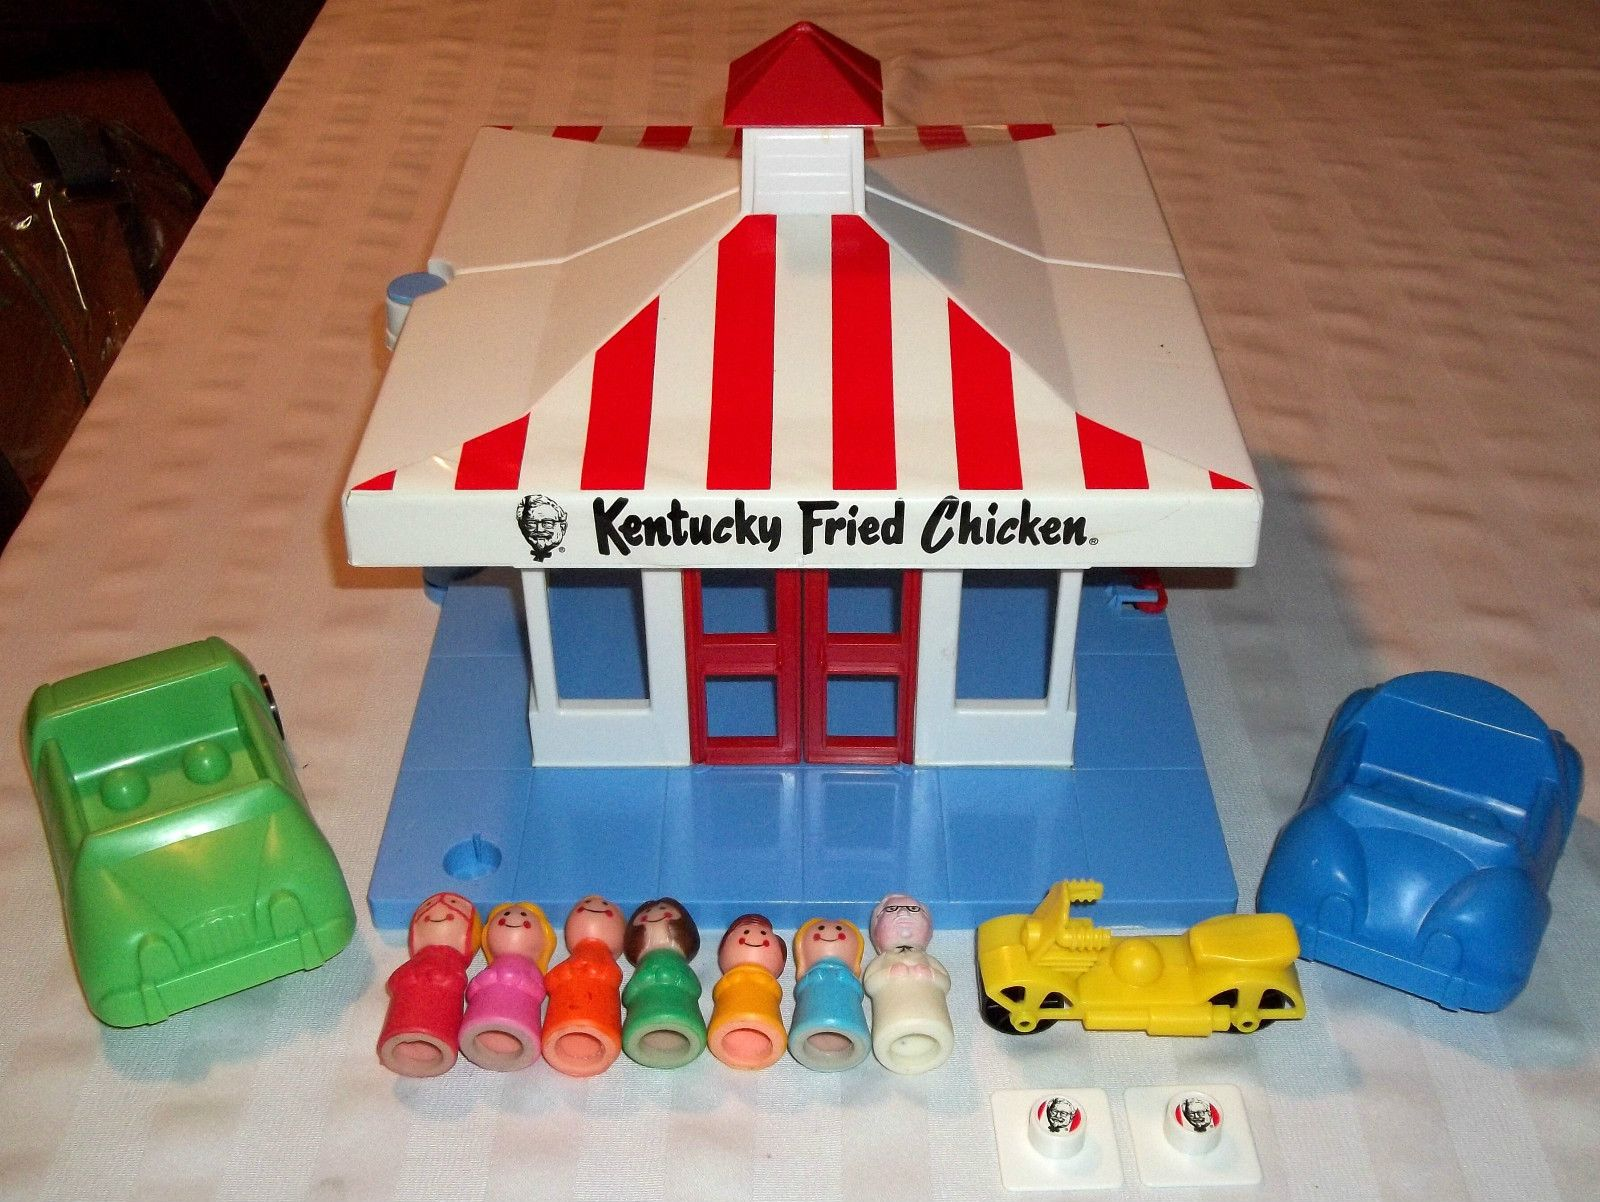 Kfc Toy Food : S kentucky fried chicken playset w colonel sanders